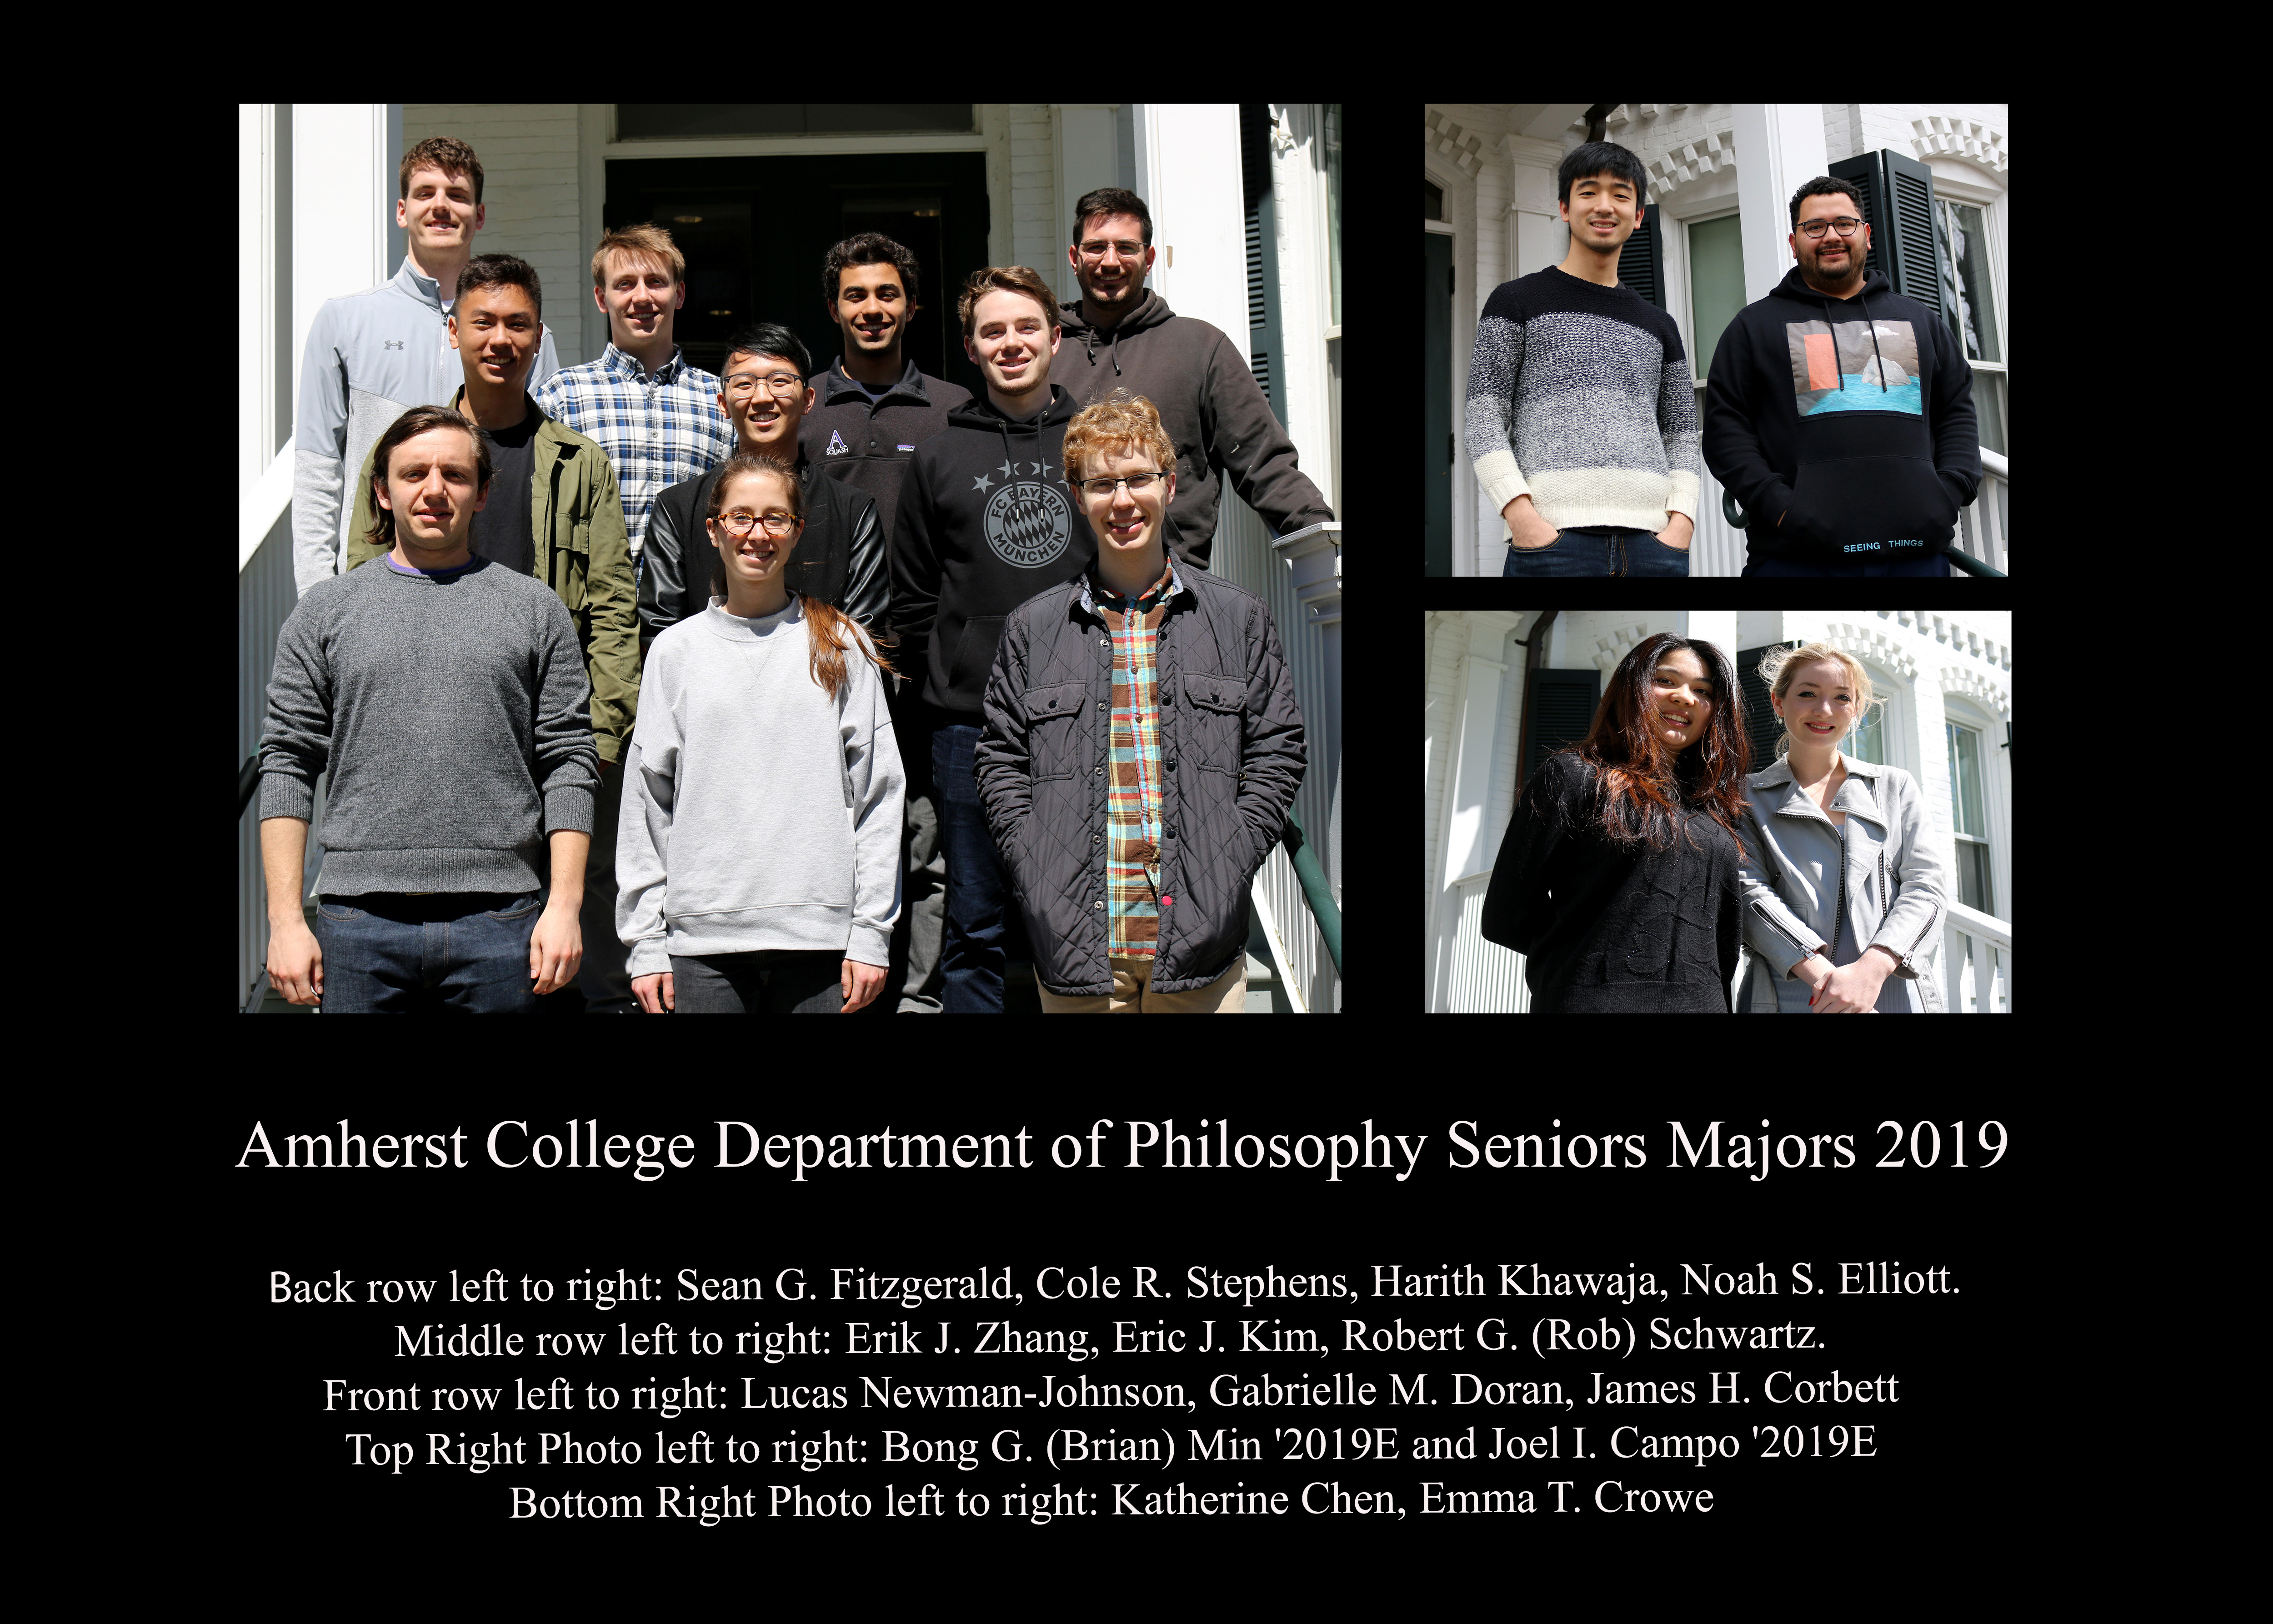 Fourteen seniors who are Philosophy majors at Amherst College posing together outside